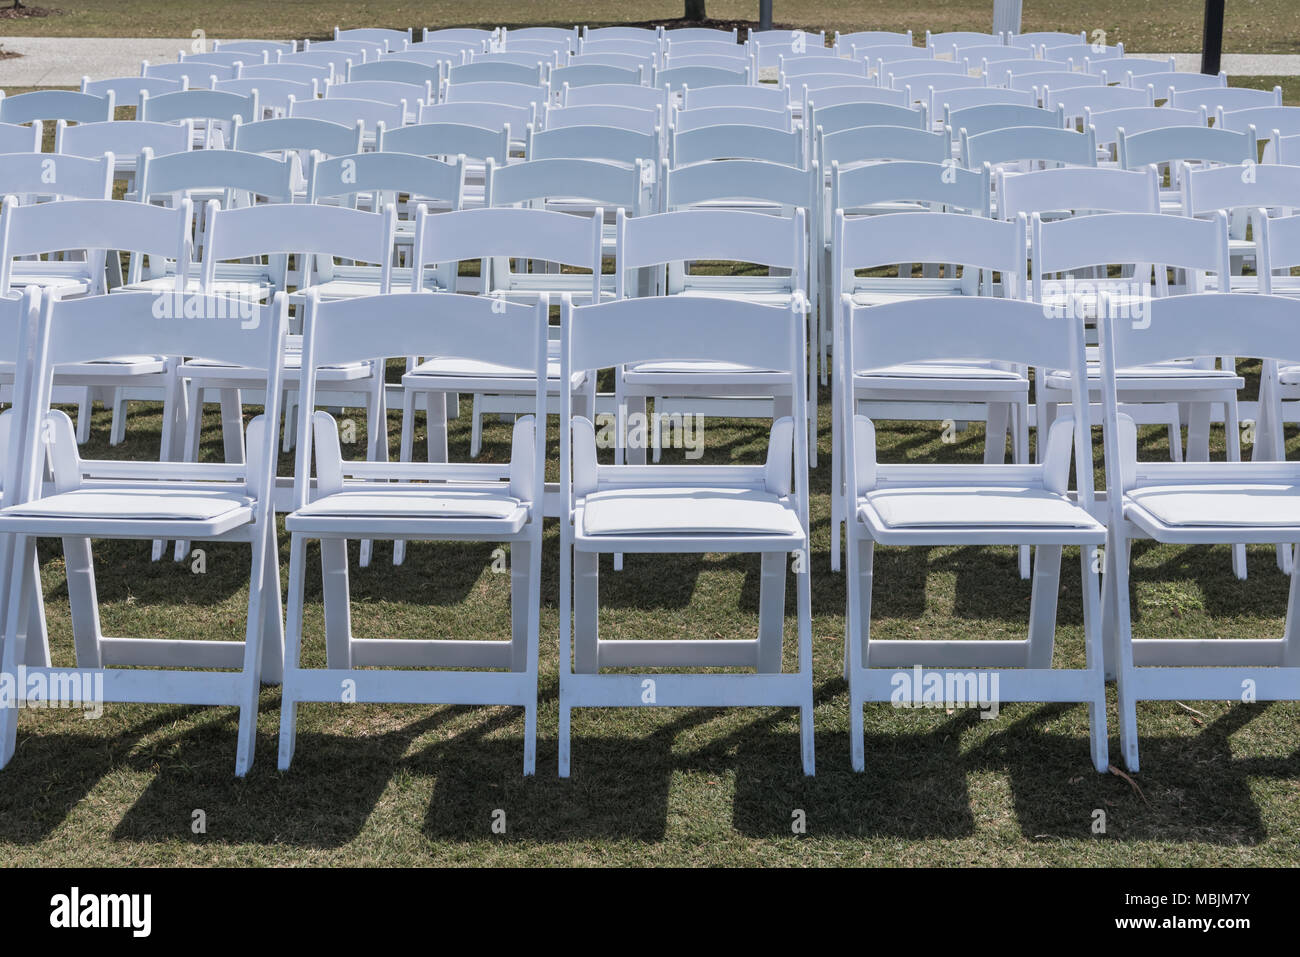 Empty Rows of White Chairs on grassy lawn - Stock Image